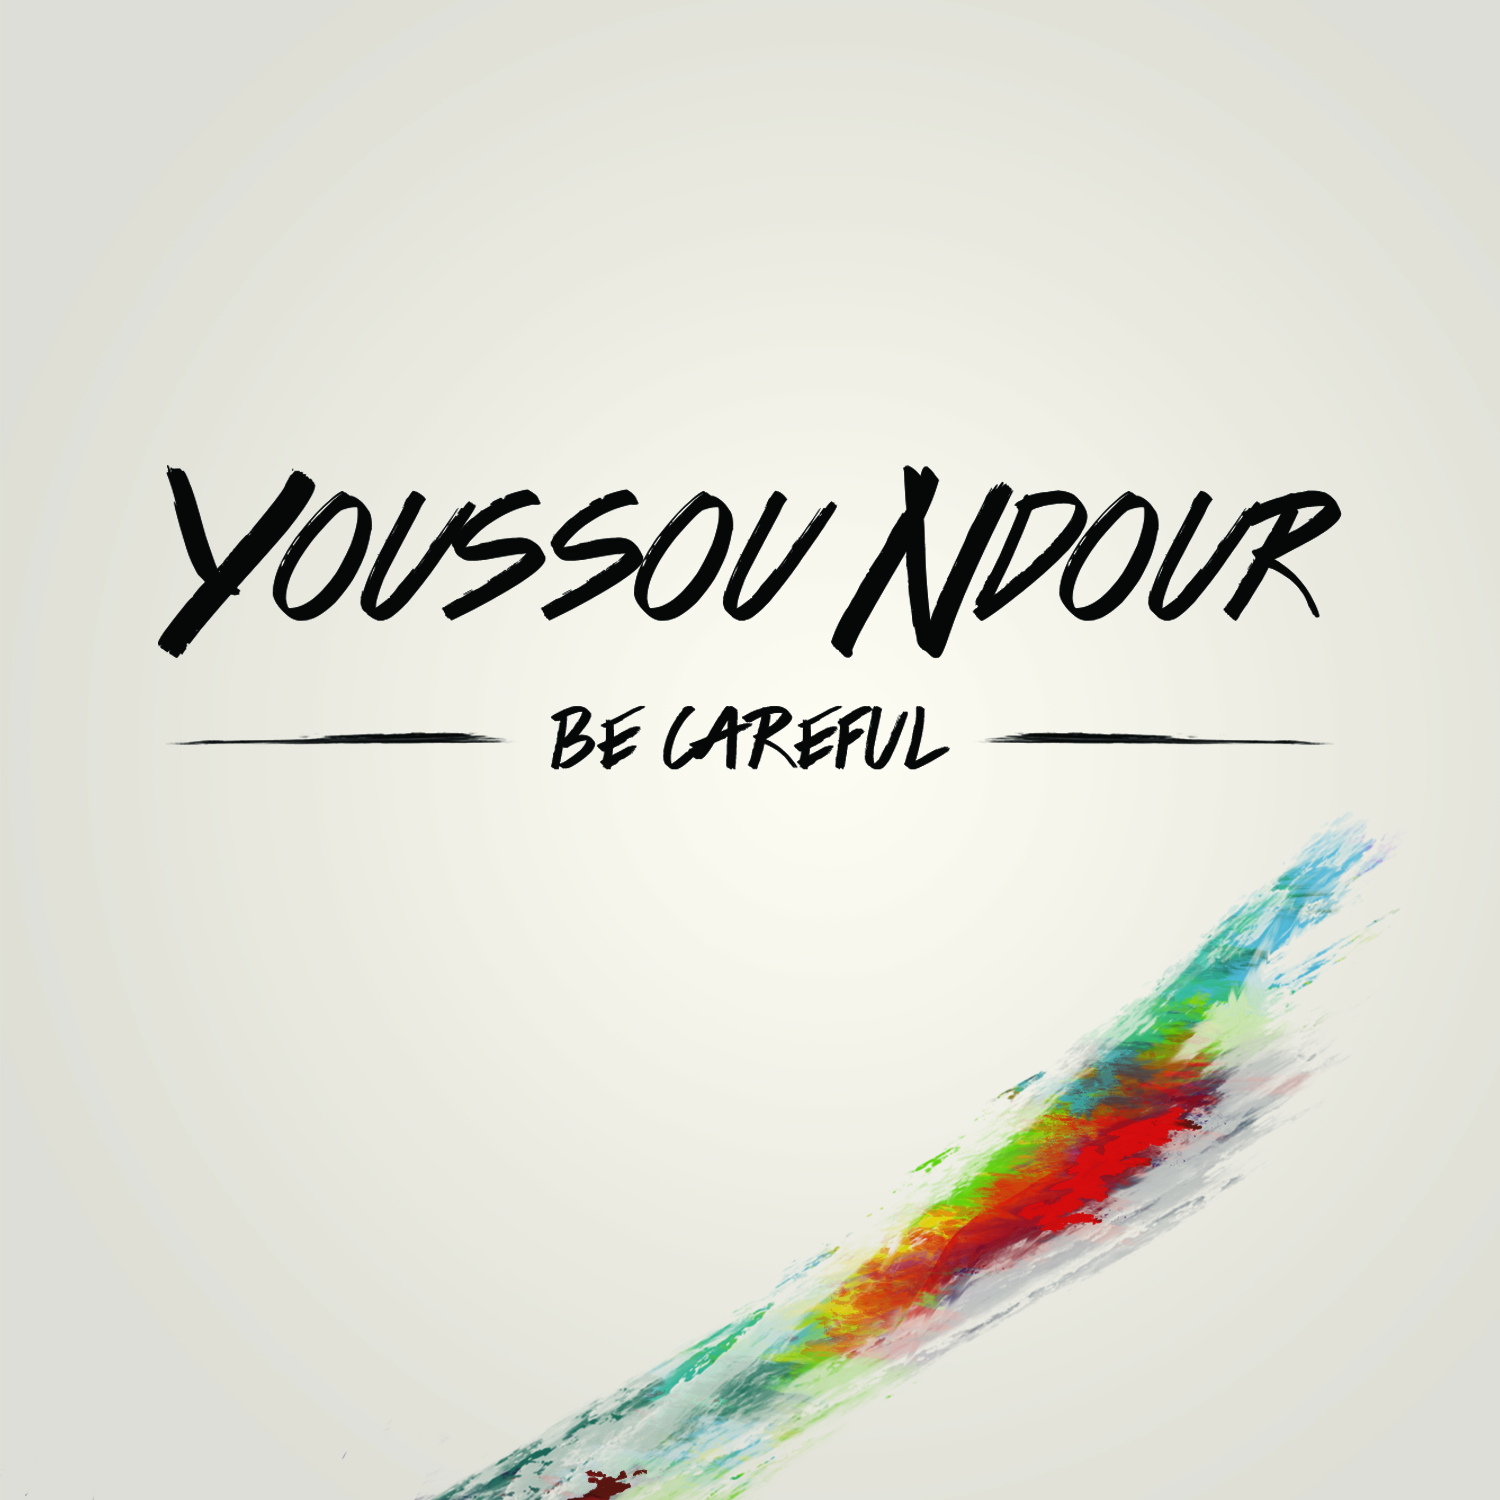 single_youssoundour